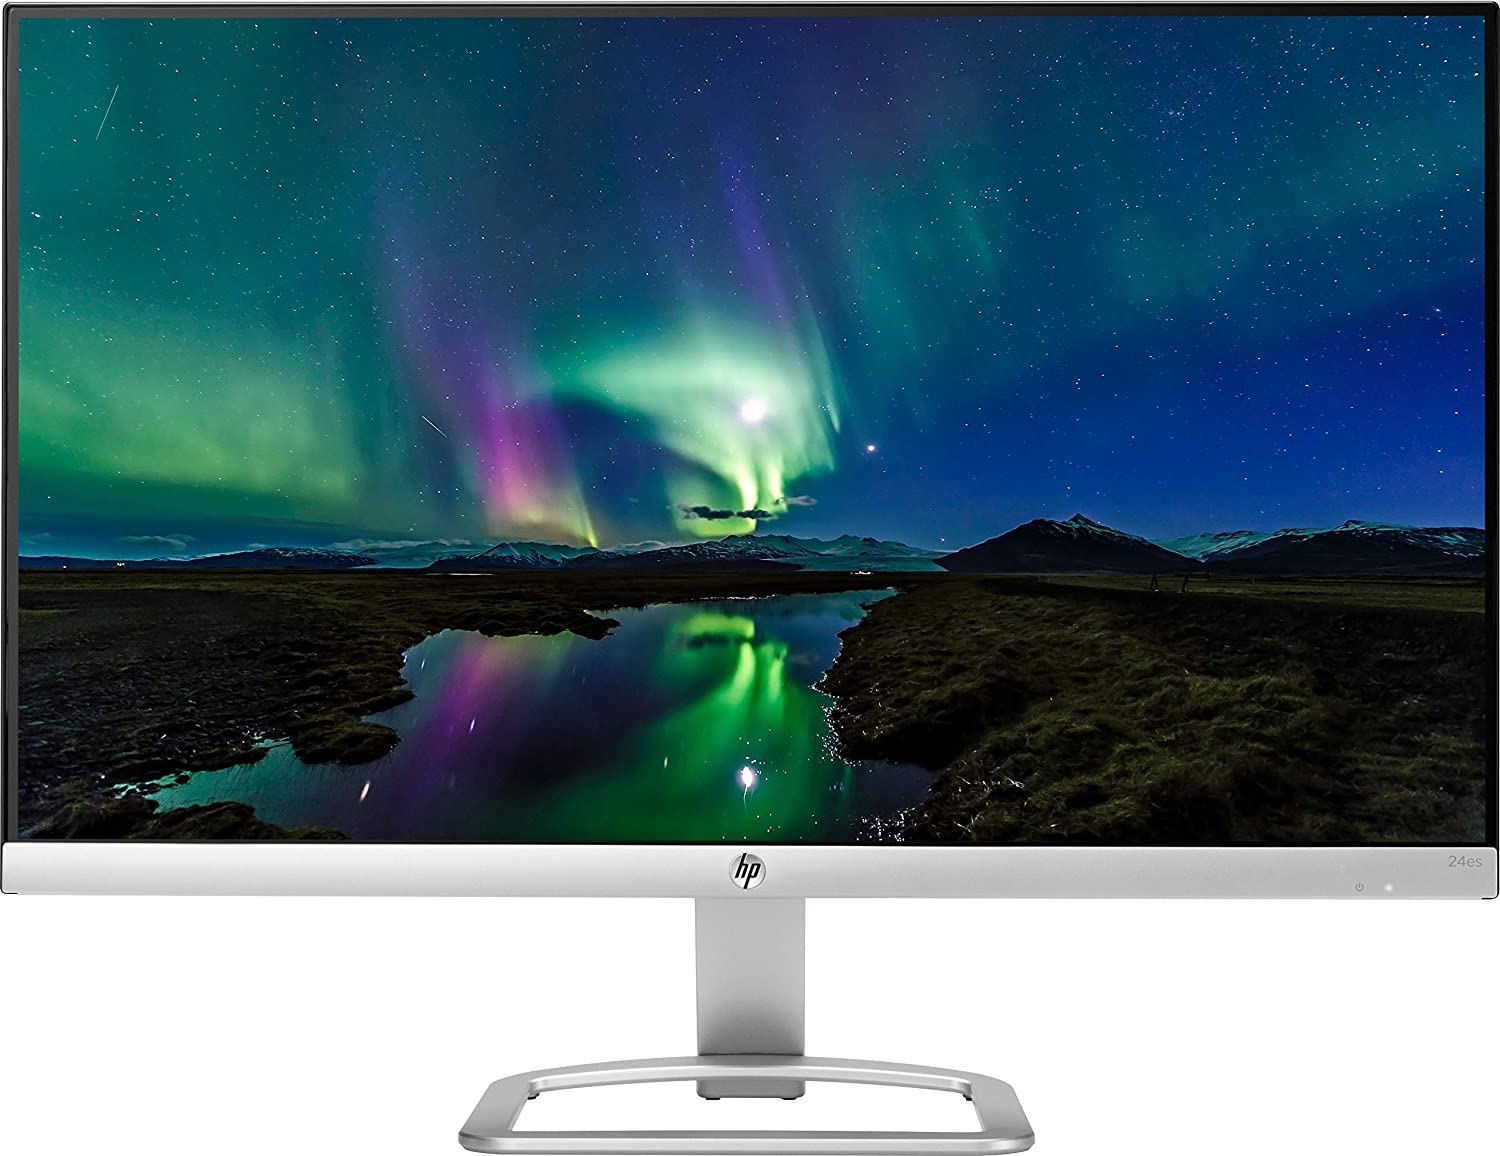 Monitor LED Acer vs Monitor LED Hp